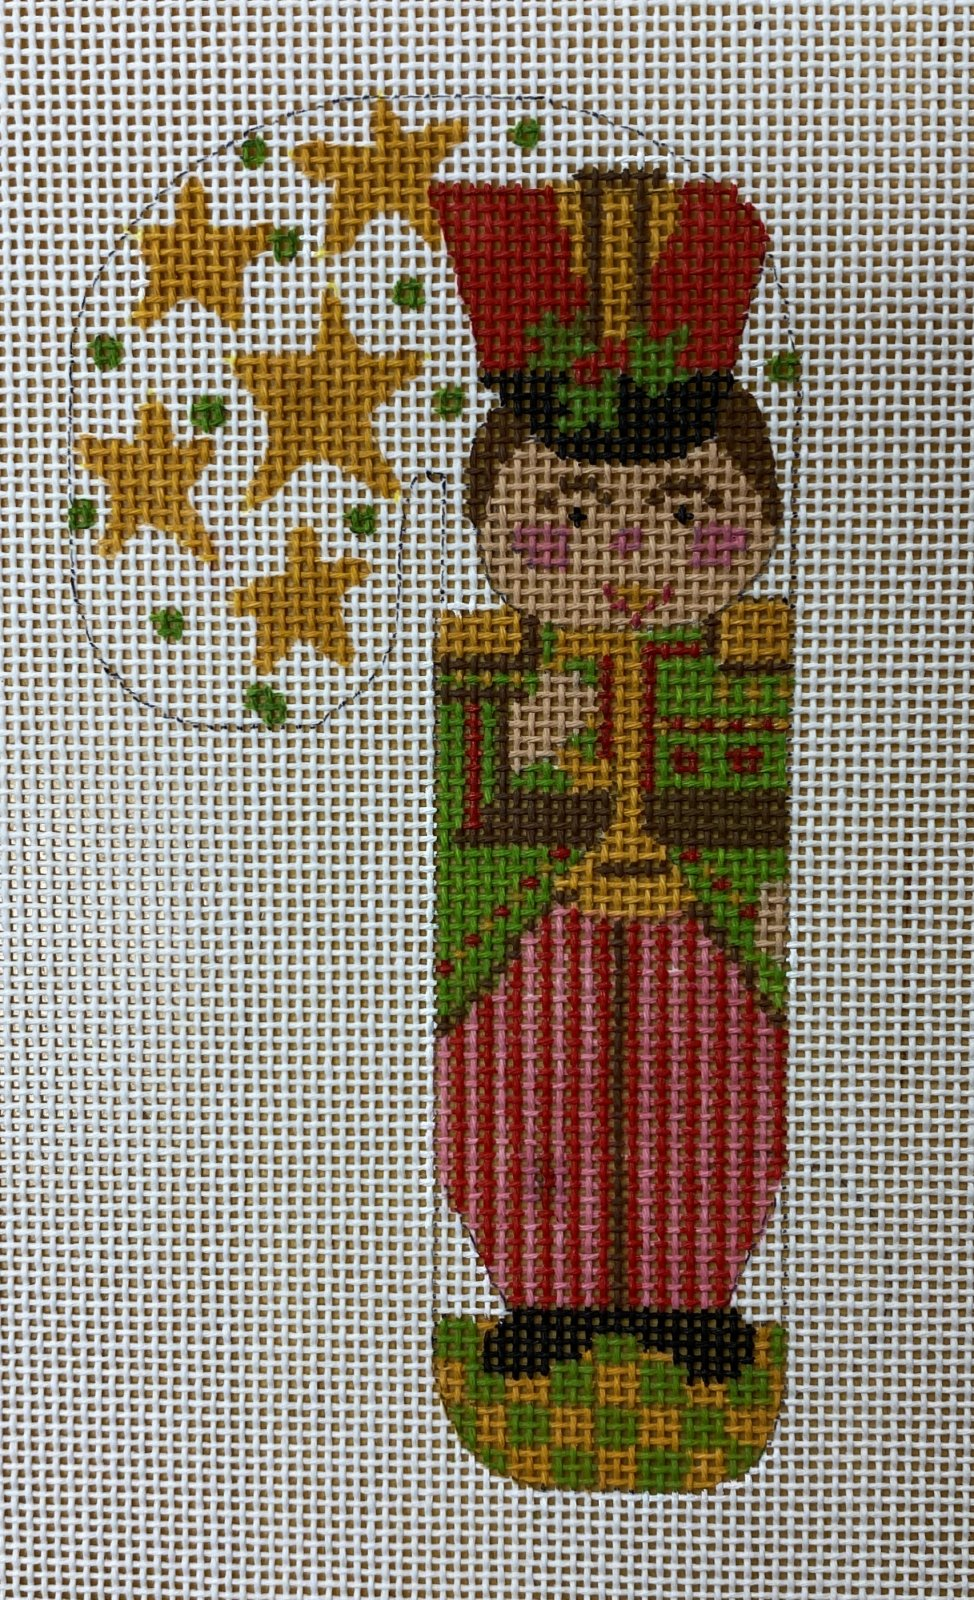 toy soldier candy cane